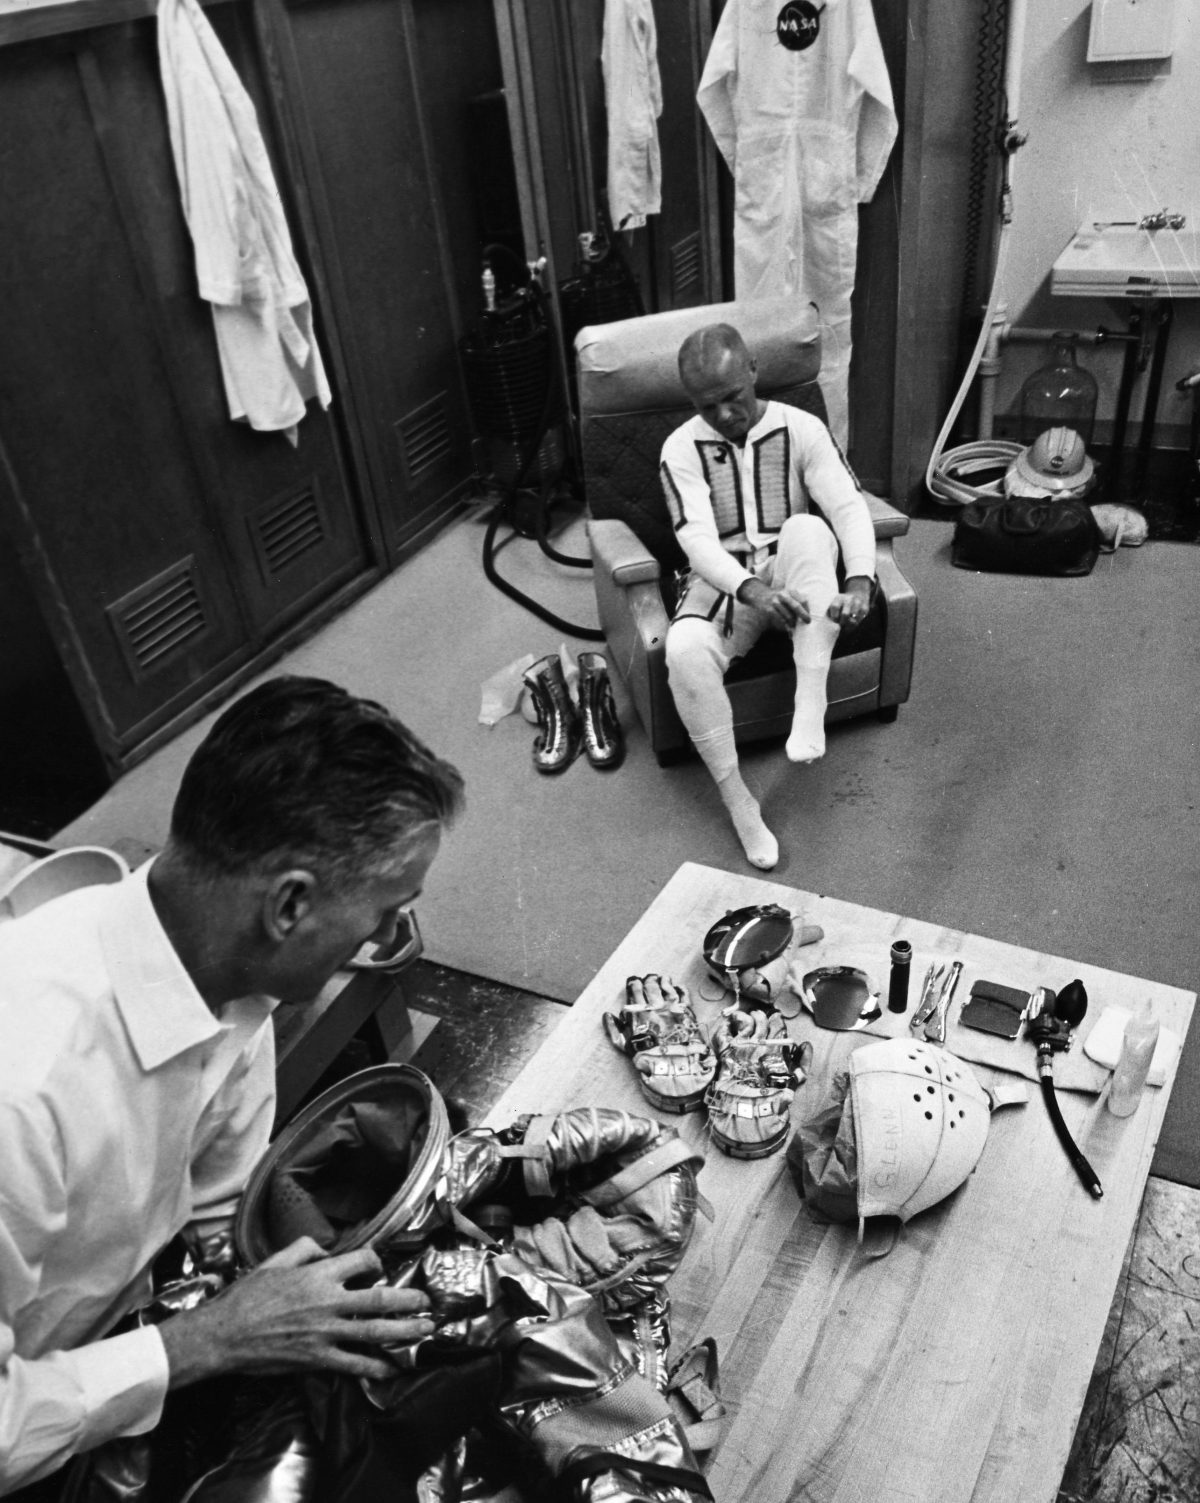 John Glenn (1921-2016). American Astronaut And Politician. Glenn And Space Flight Equipment Specialist Joe Schmitt Performing Suiting-Up Preparations Before The Launch Of Mercury Atlas 6 From Cape Canaveral, Florida, 20 February 1962.